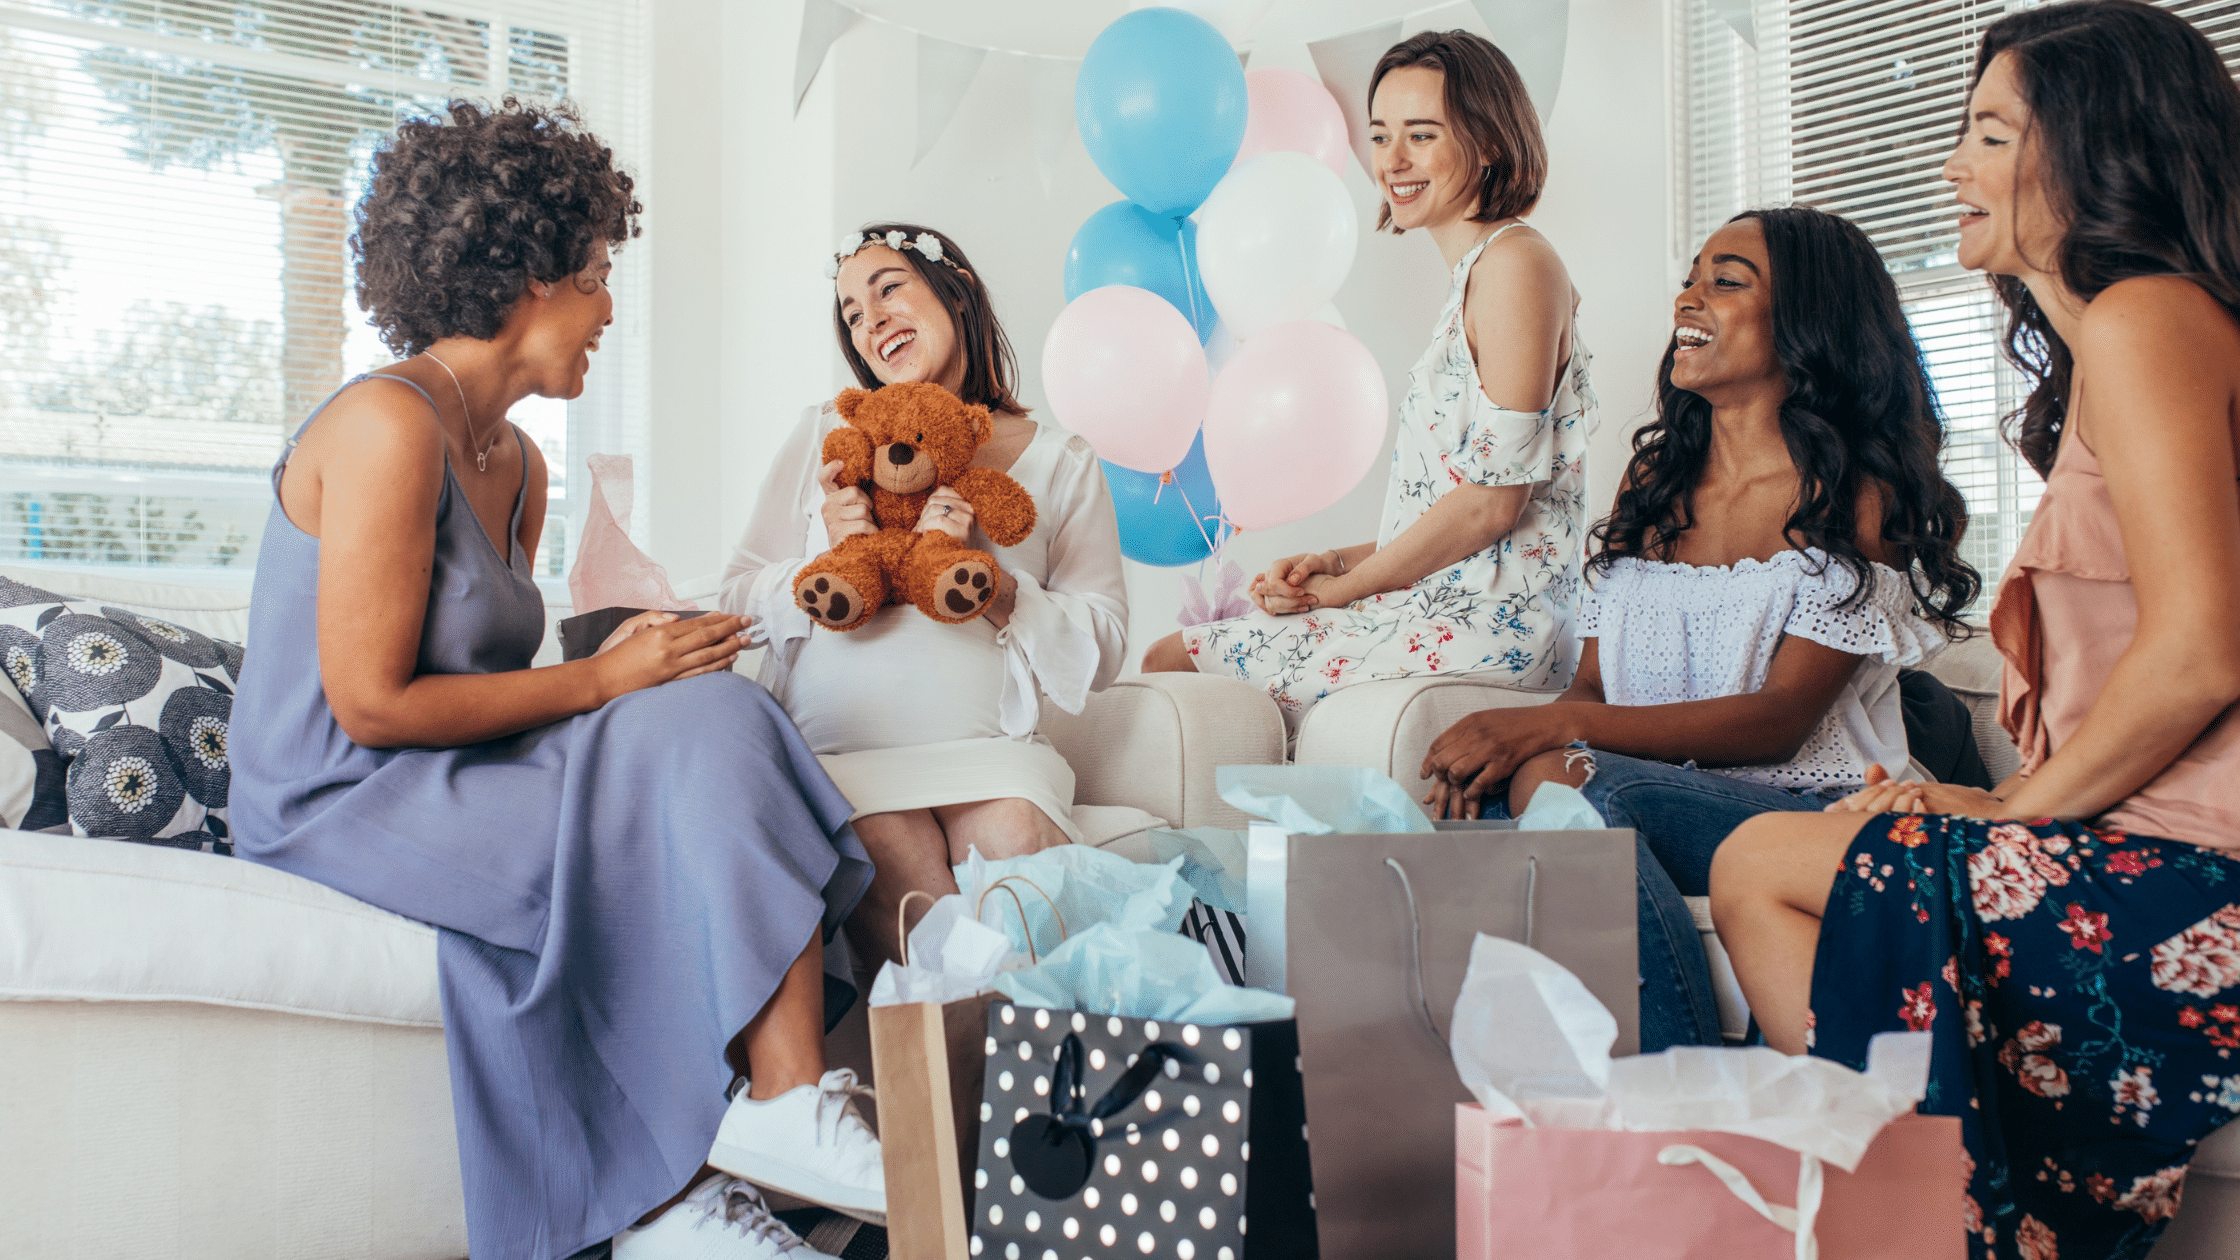 Edmond Doula top 5 baby shower gifts